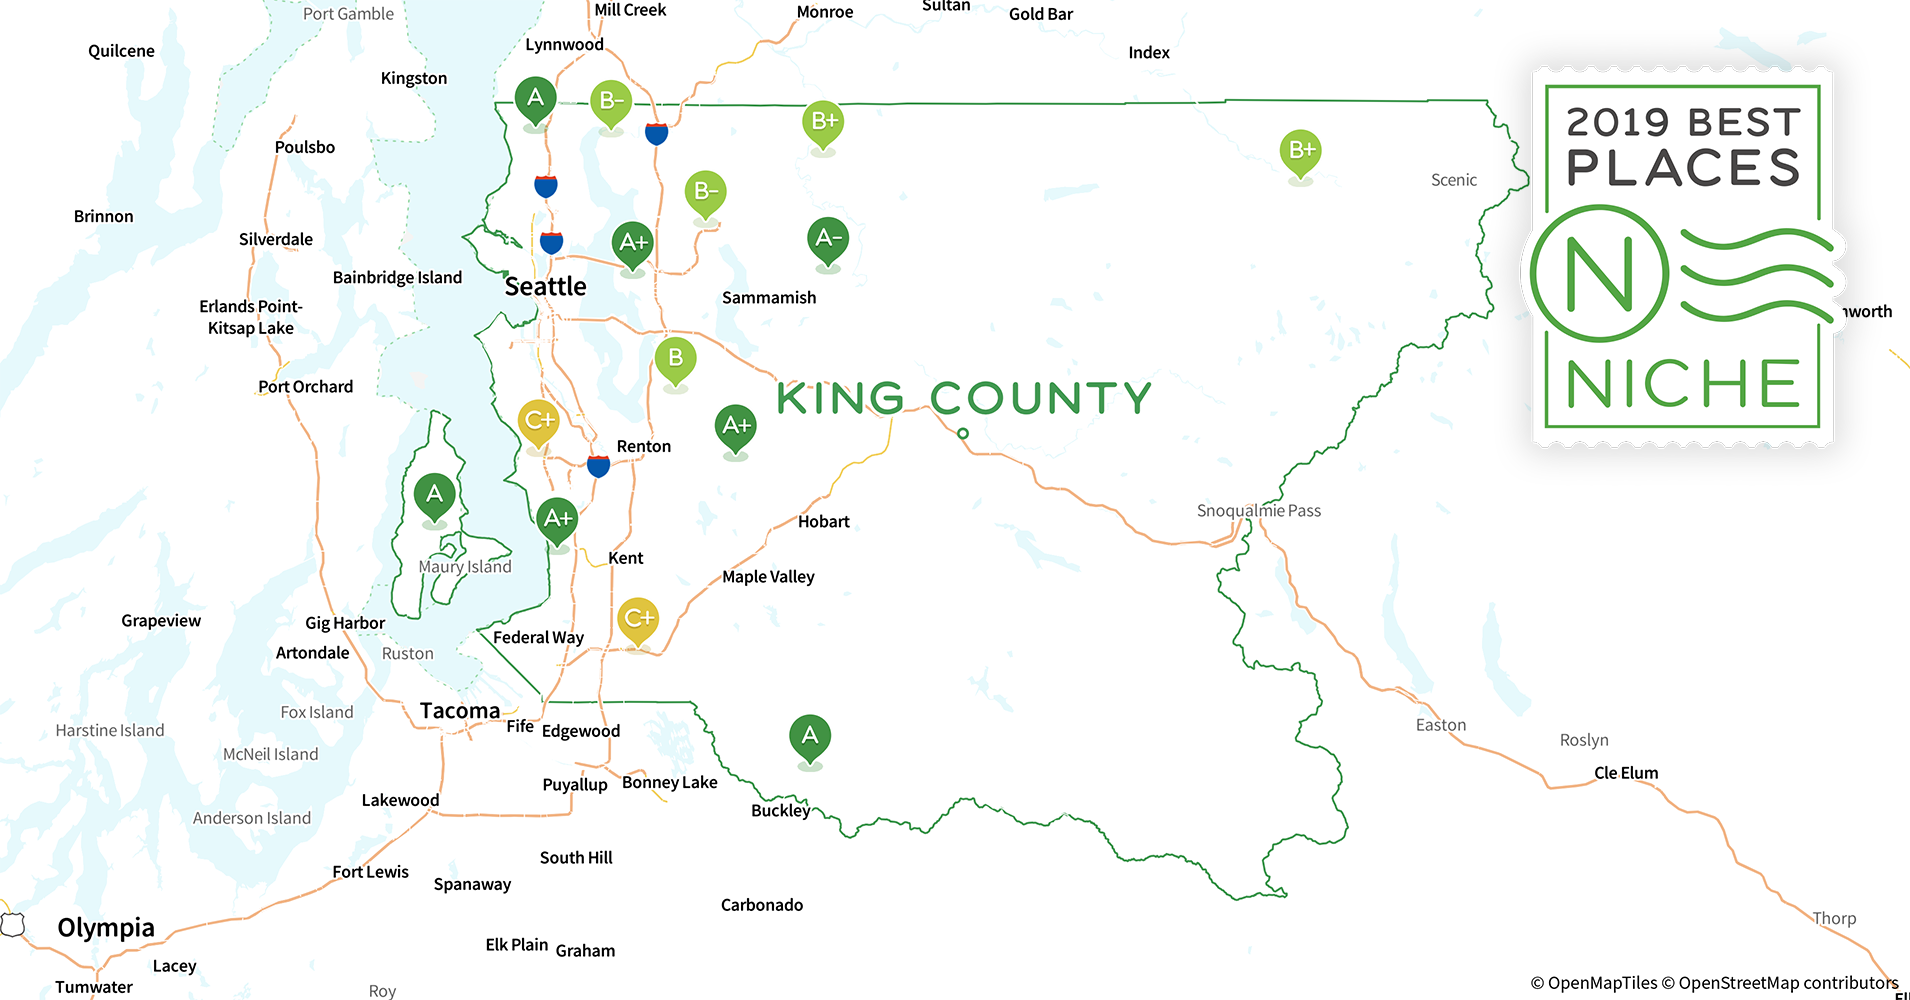 2019 Safe Places to Live in King County, WA - Niche King County Washington State Map on everett washington state map, tukwila washington state map, grays harbor county washington state map, ferry county washington state map, richland washington state map, deception pass washington state map, covington washington state map, port angeles washington state map, federal way washington state map, aberdeen washington state map, mount rainier washington state map, douglas county washington state map, united states washington state map, chinook pass washington state map, island county washington state map, jefferson county washington state map, cheney washington state map, washington wa state counties map, washington state forest lands map, kitsap county washington state map,